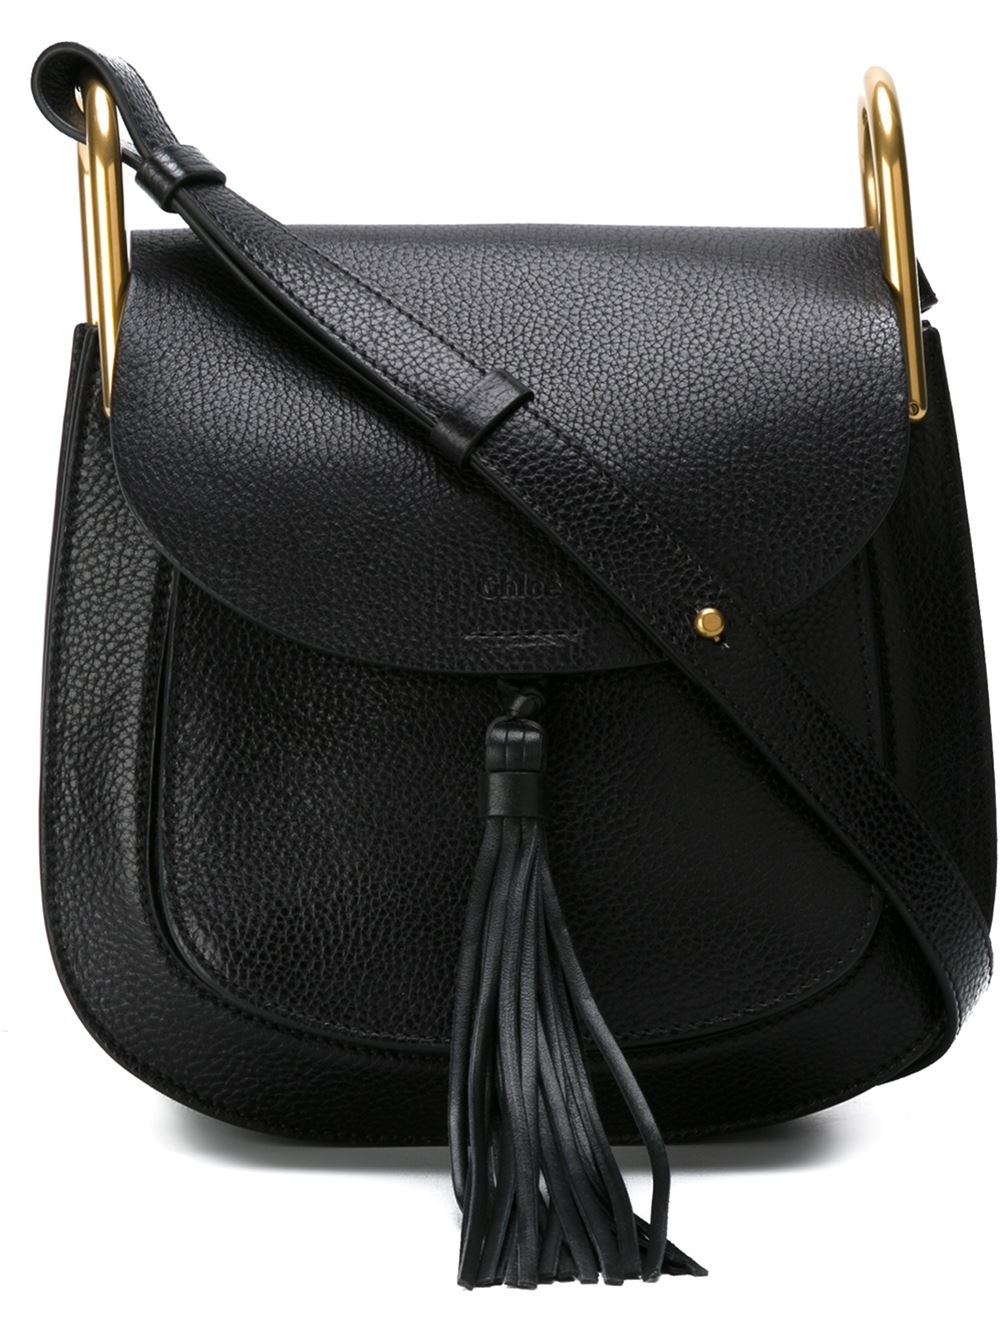 chlo hudson leather shoulder bag in black lyst. Black Bedroom Furniture Sets. Home Design Ideas